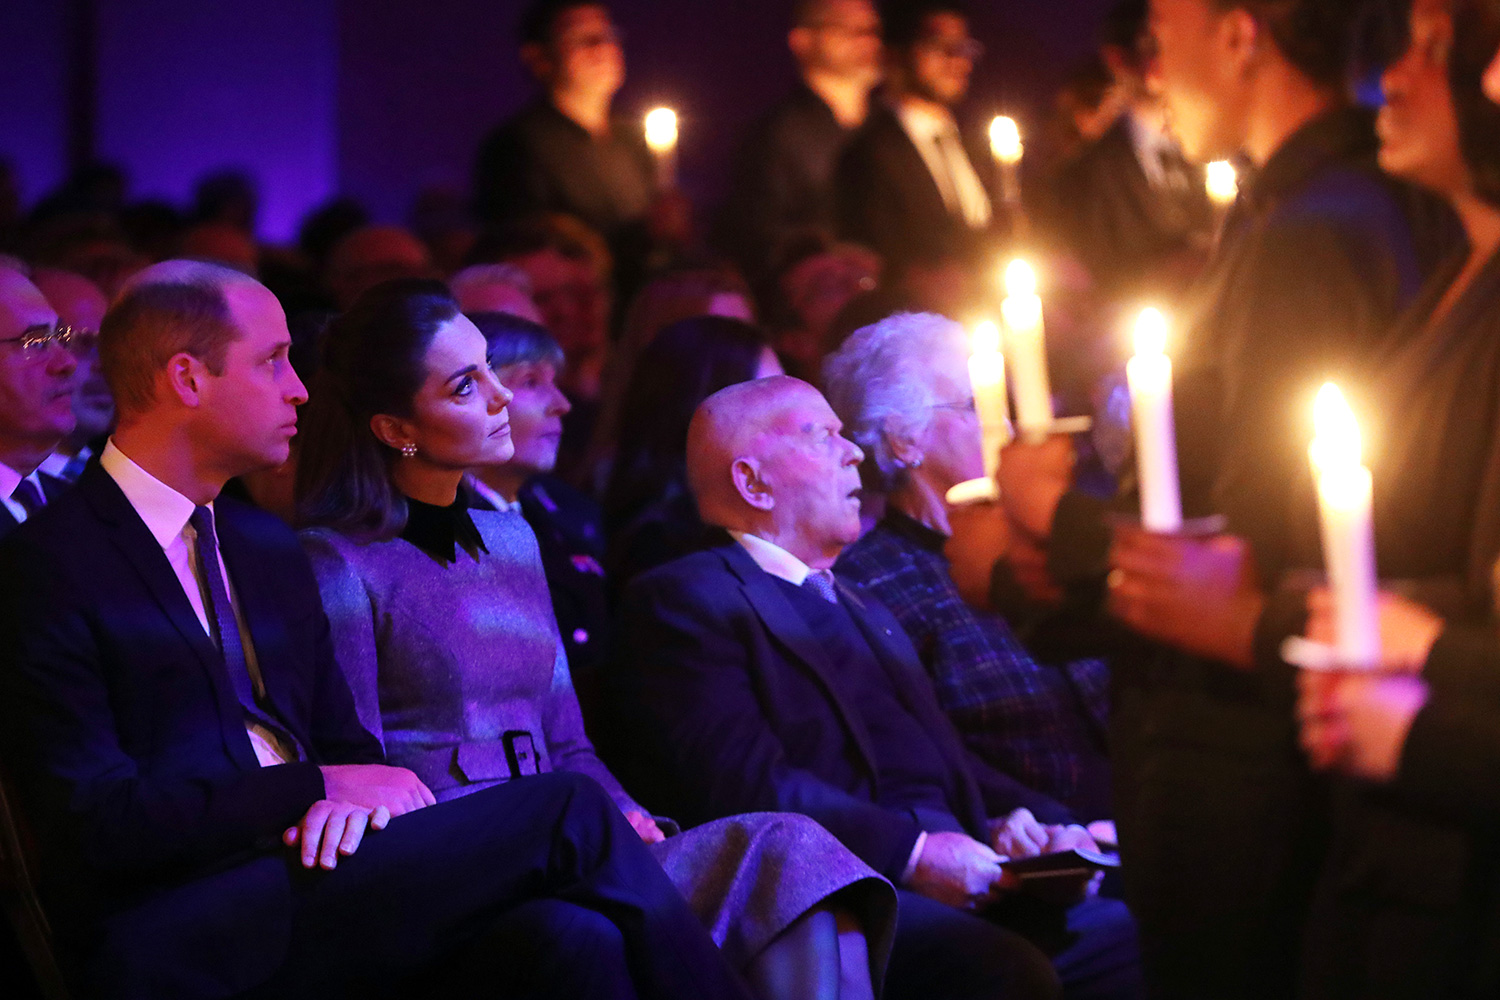 Prince William, Duke of Cambridge and Catherine, Duchess of Cambridge attend the UK Holocaust Memorial Day Commemorative Ceremony in Westminster on January 27, 2020 in London